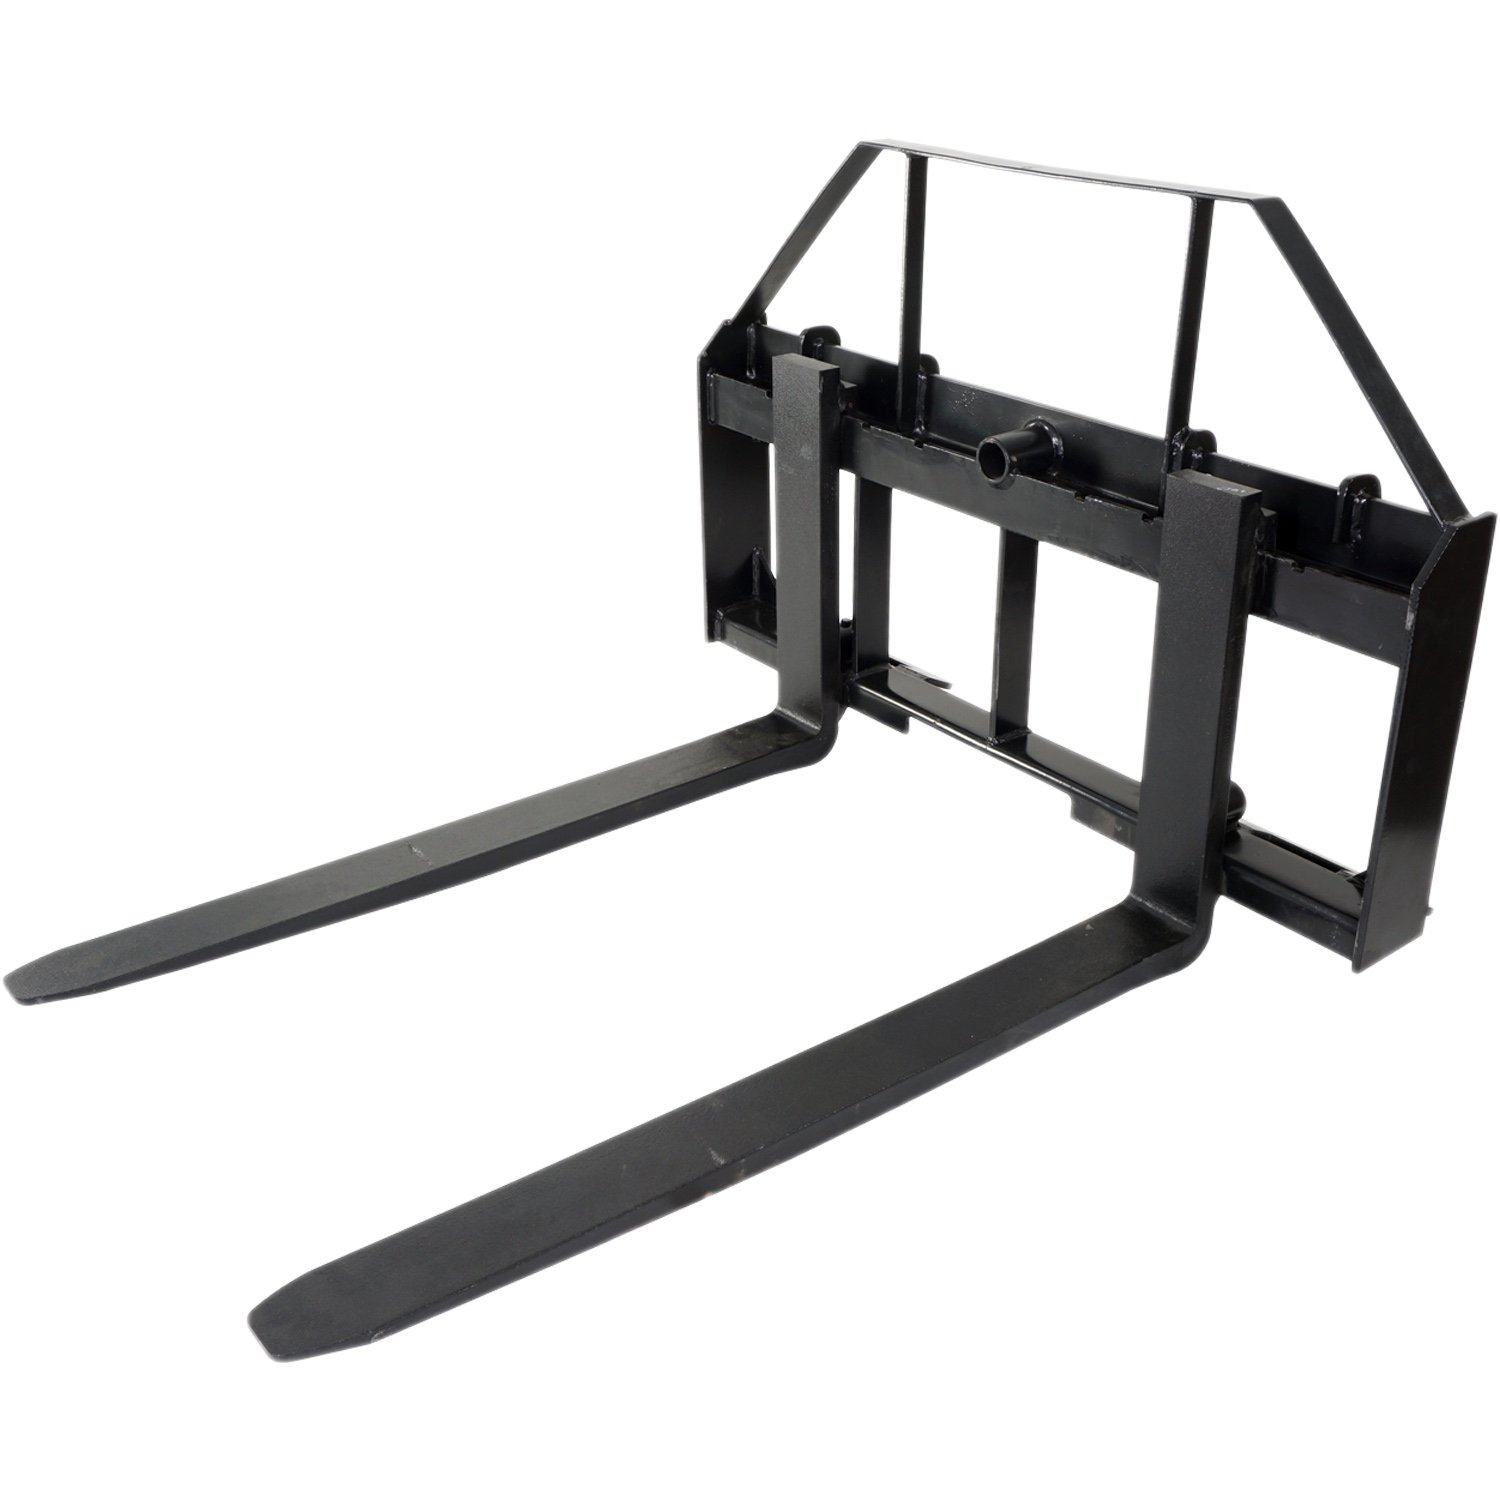 Pallet Forks Attachment for Tractors and Loaders, Skid Steer, Quick Tach, 42'' by Titan Attachments